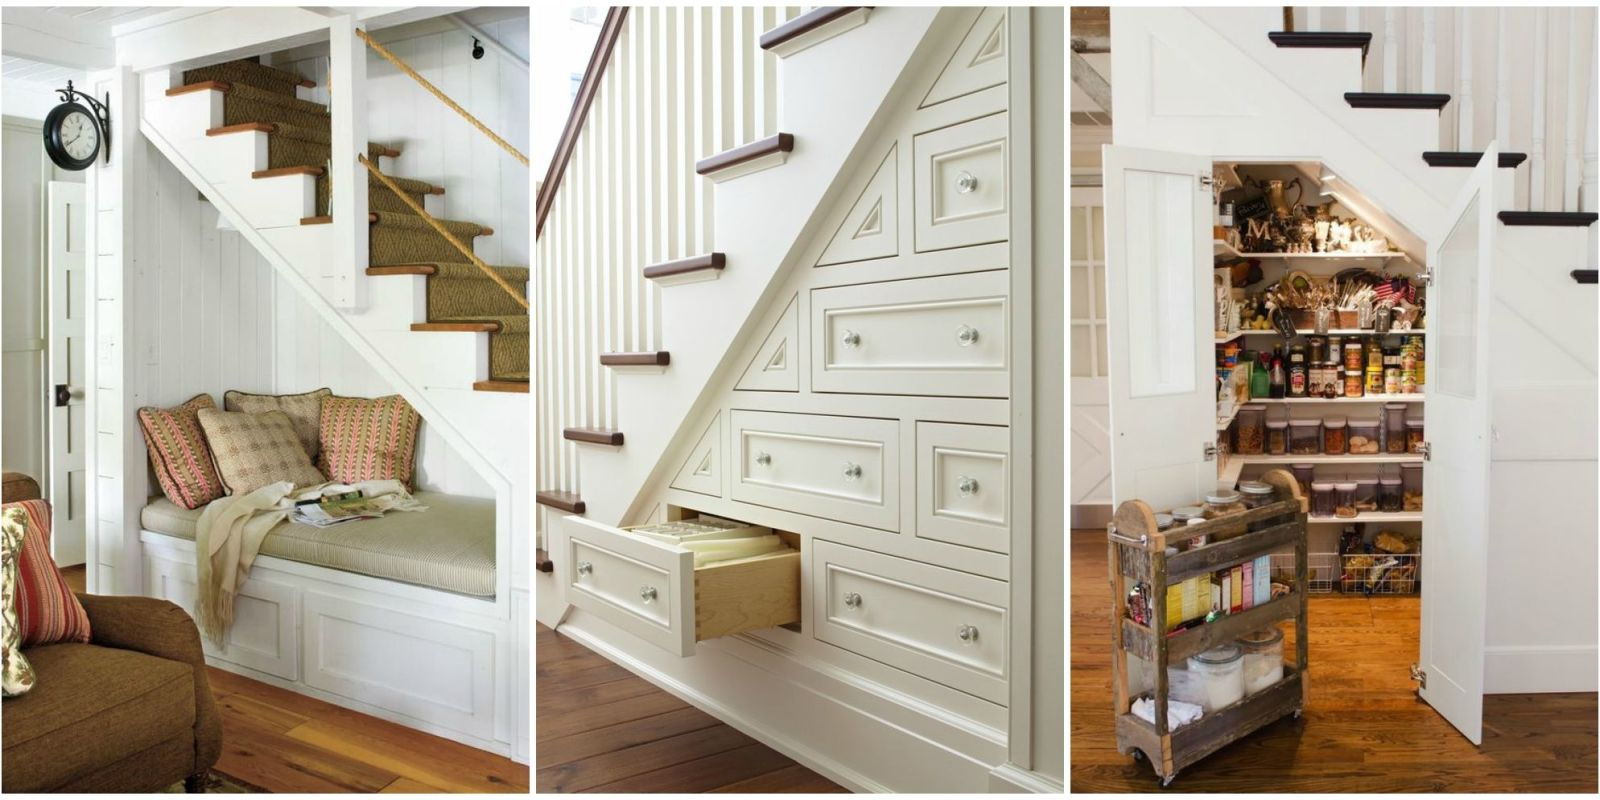 15 Genius under Stairs Storage Ideas - What to Do With Empty Space